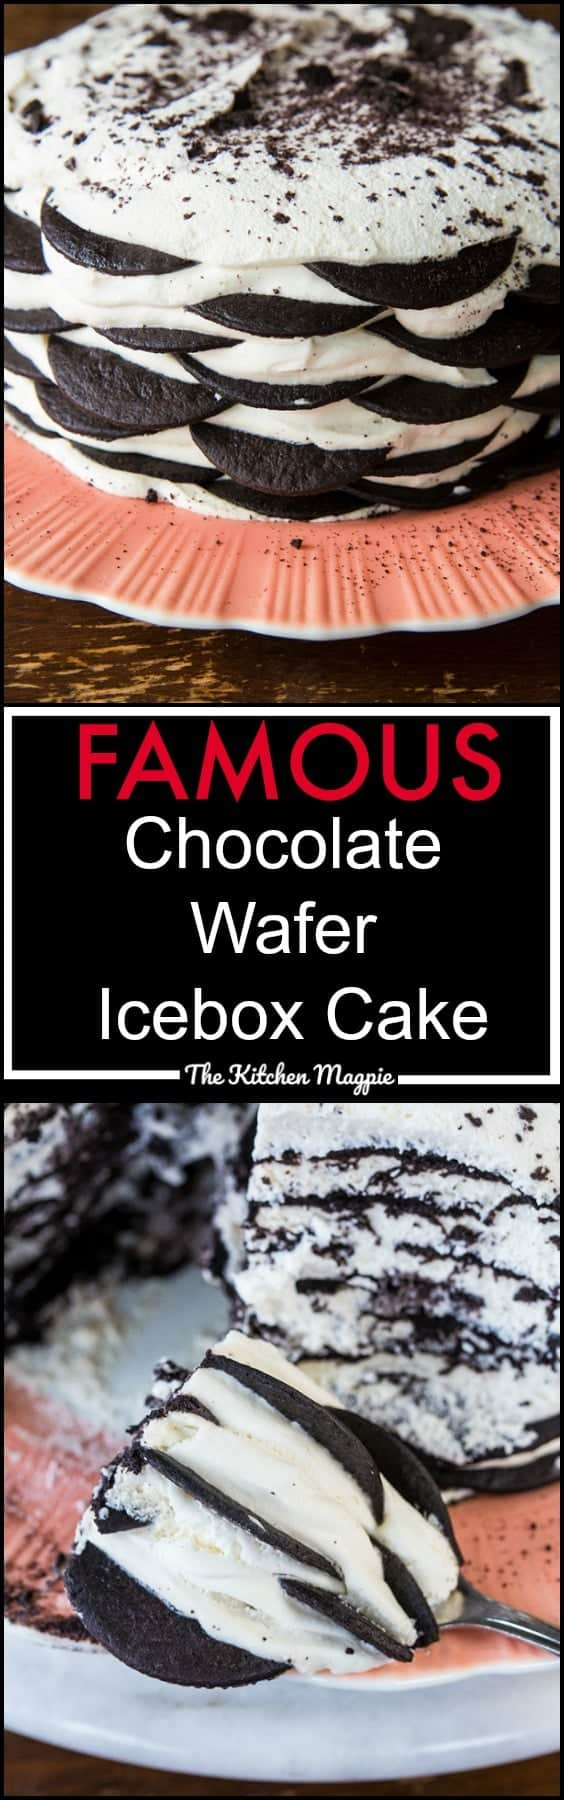 The Famous Chocolate Wafer Icebox Cake - The Kitchen Magpie